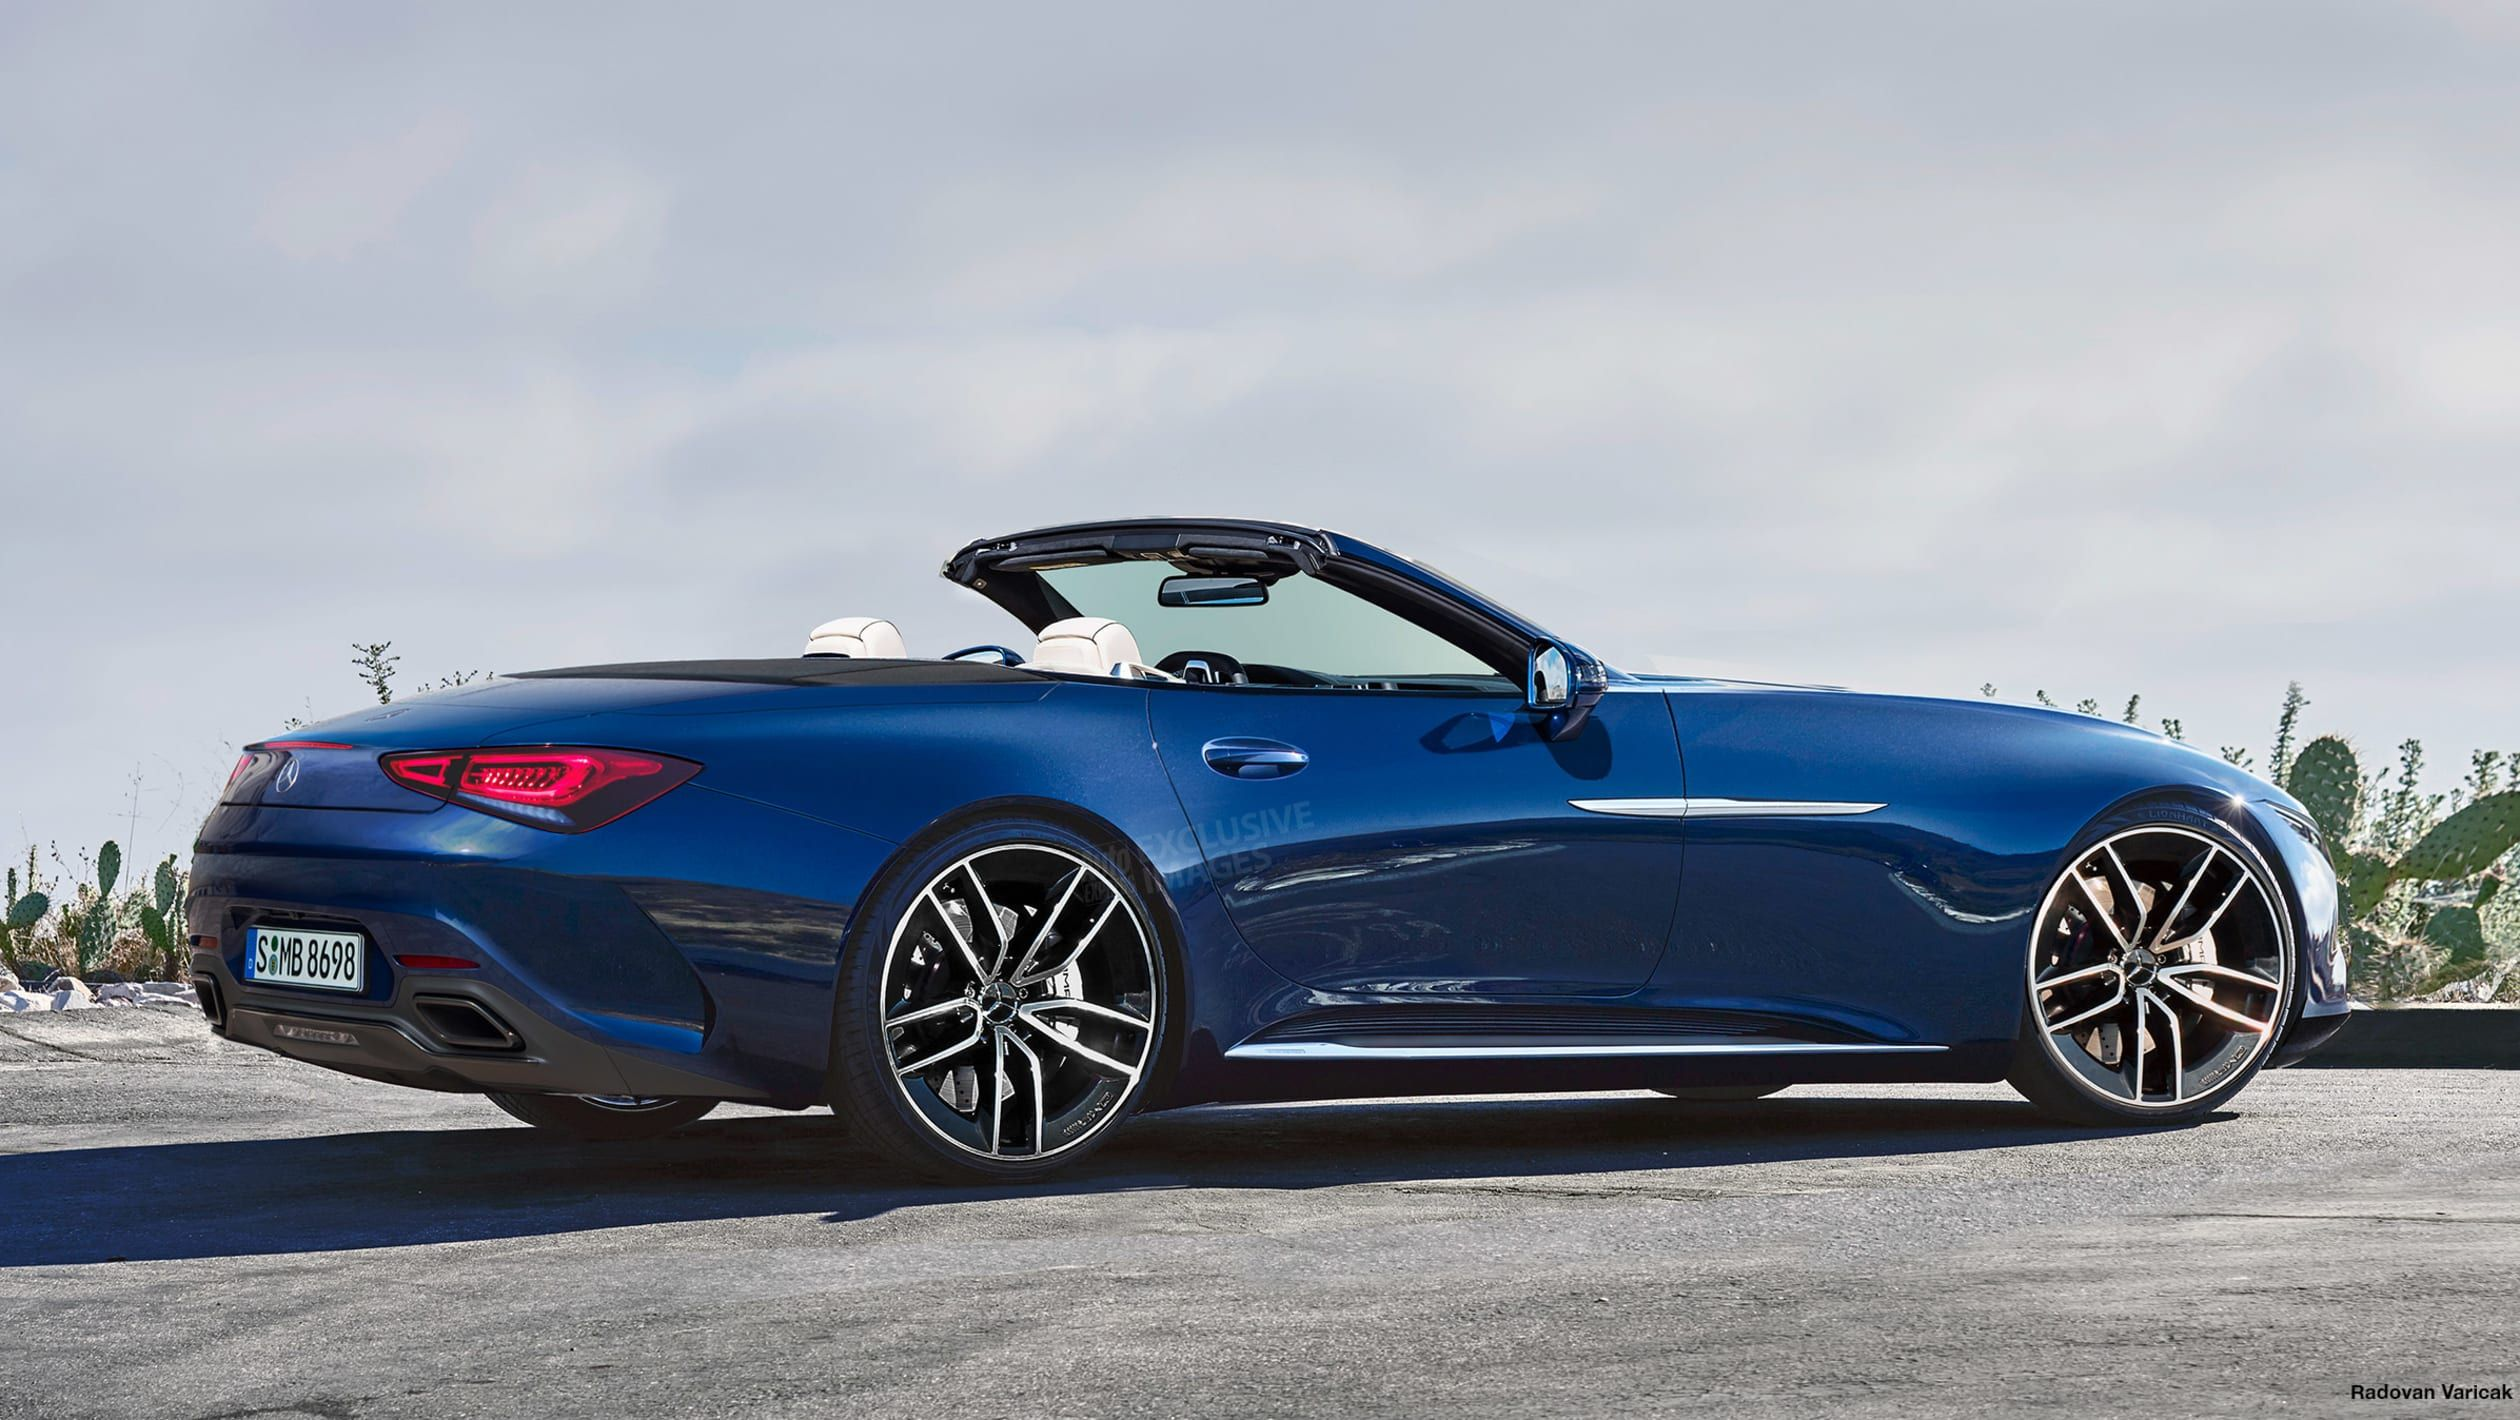 New 2021 Mercedes Sl To Be Developed By Amg With 2 2 Layout Pictures Auto Express Mercedes Sl Mercedes Benz Convertible Mercedes